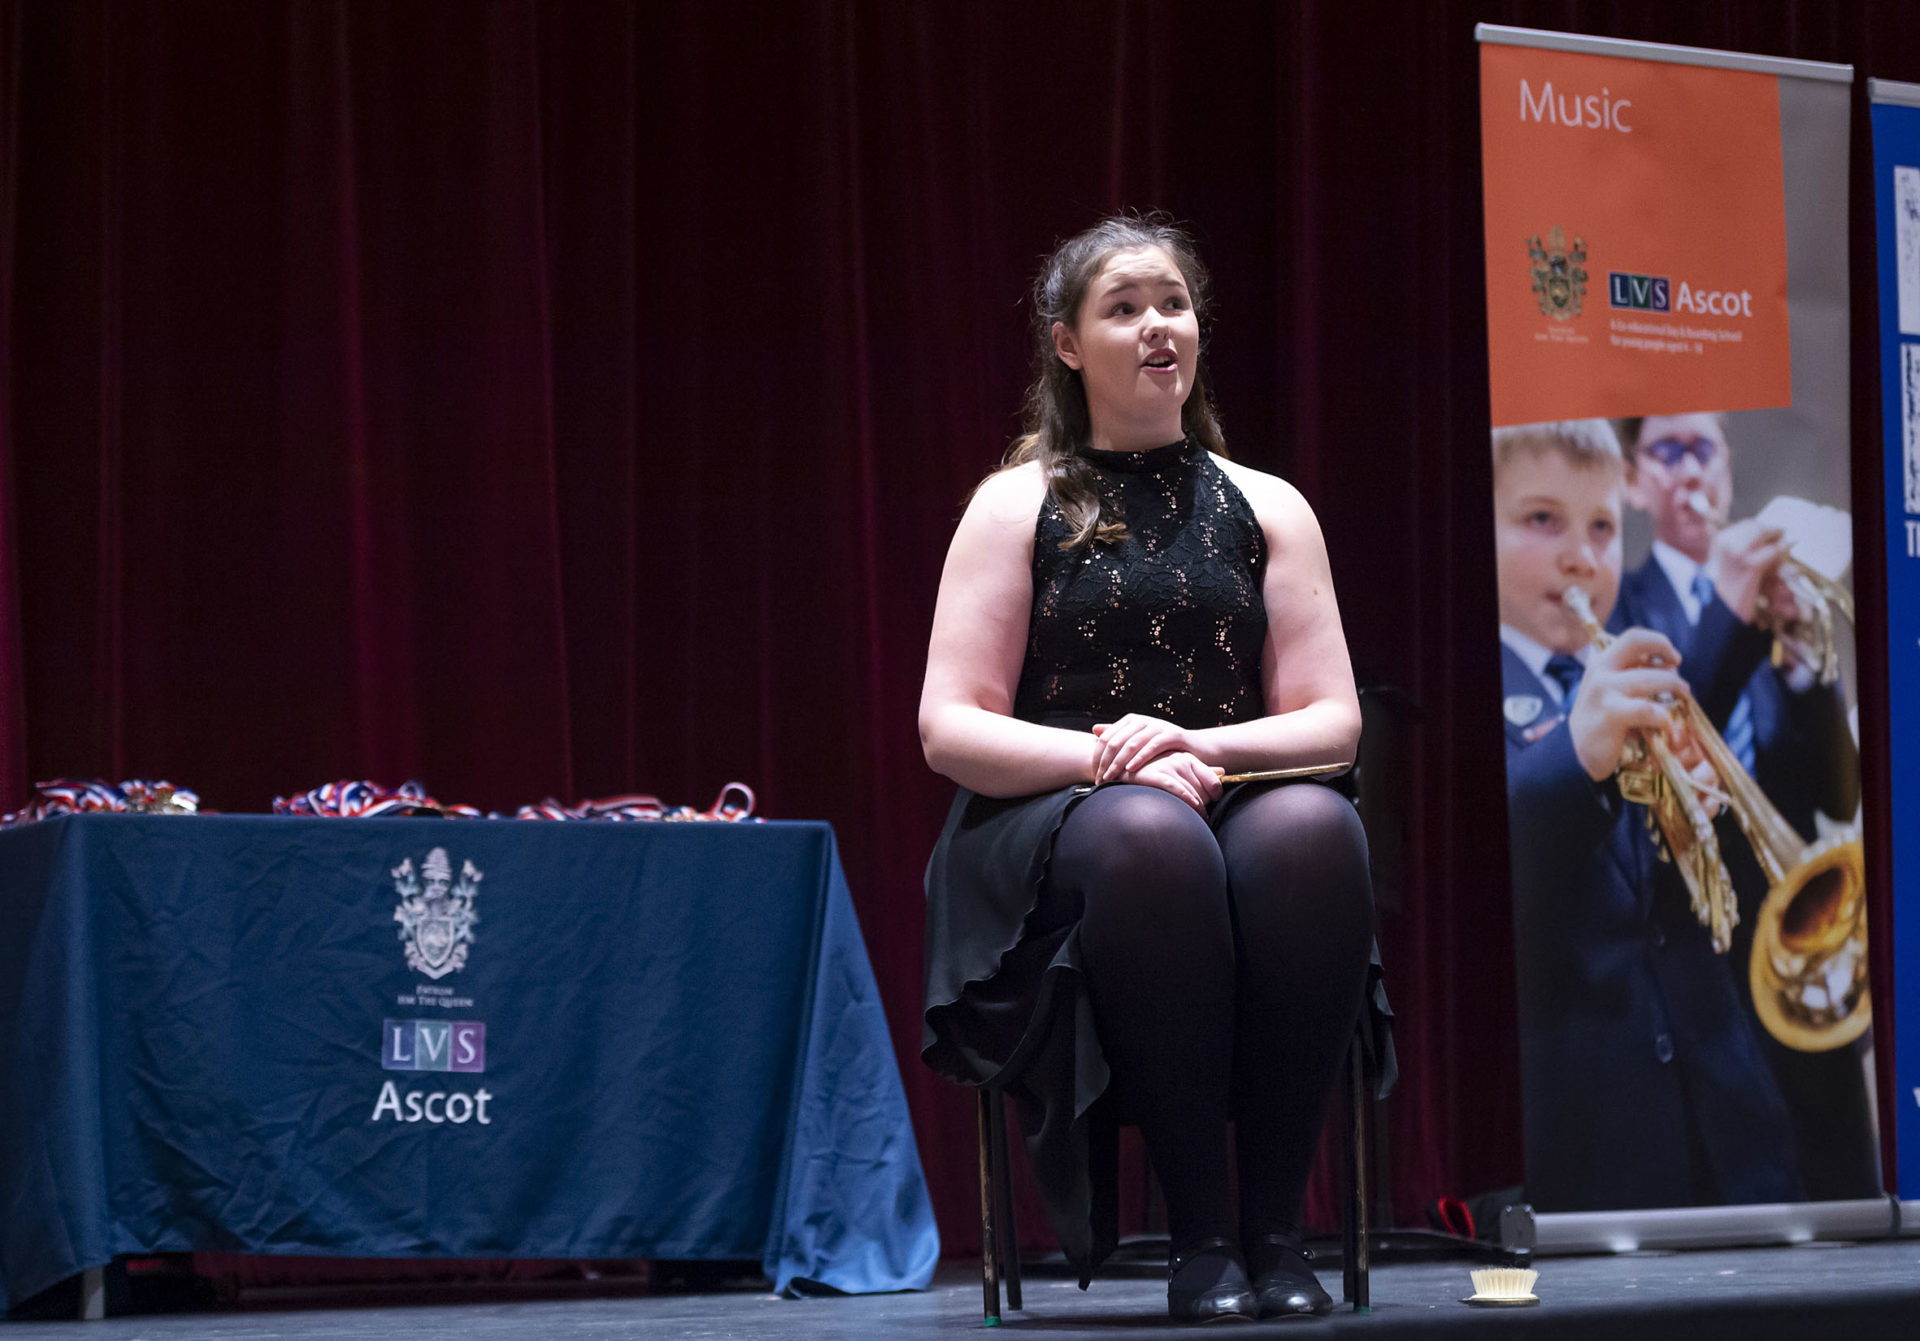 girl performs on stage at the lvs ascot music festival